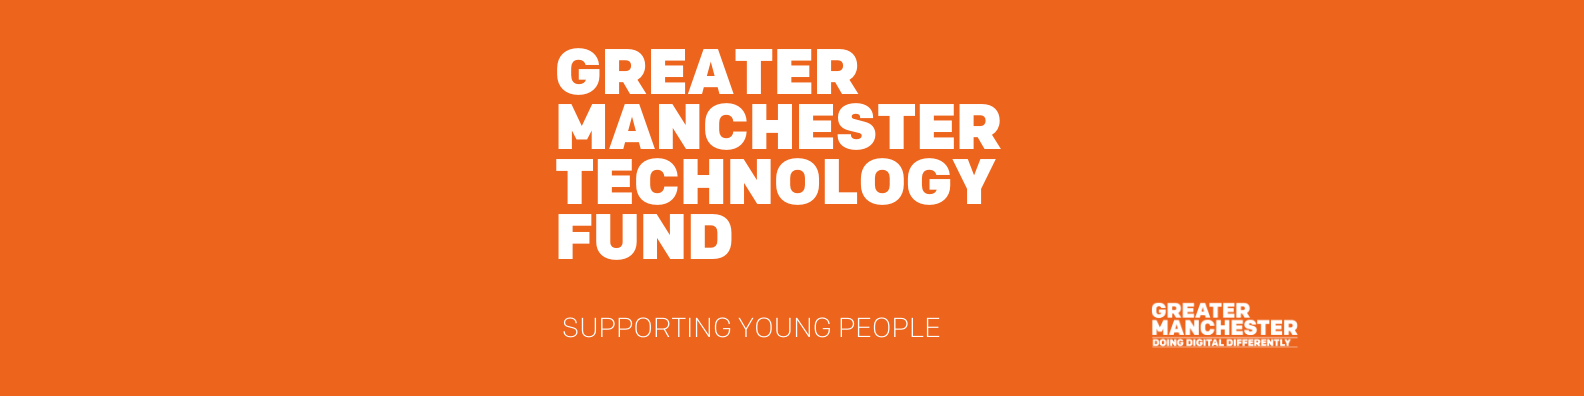 Greater Manchester Technology Fund logo